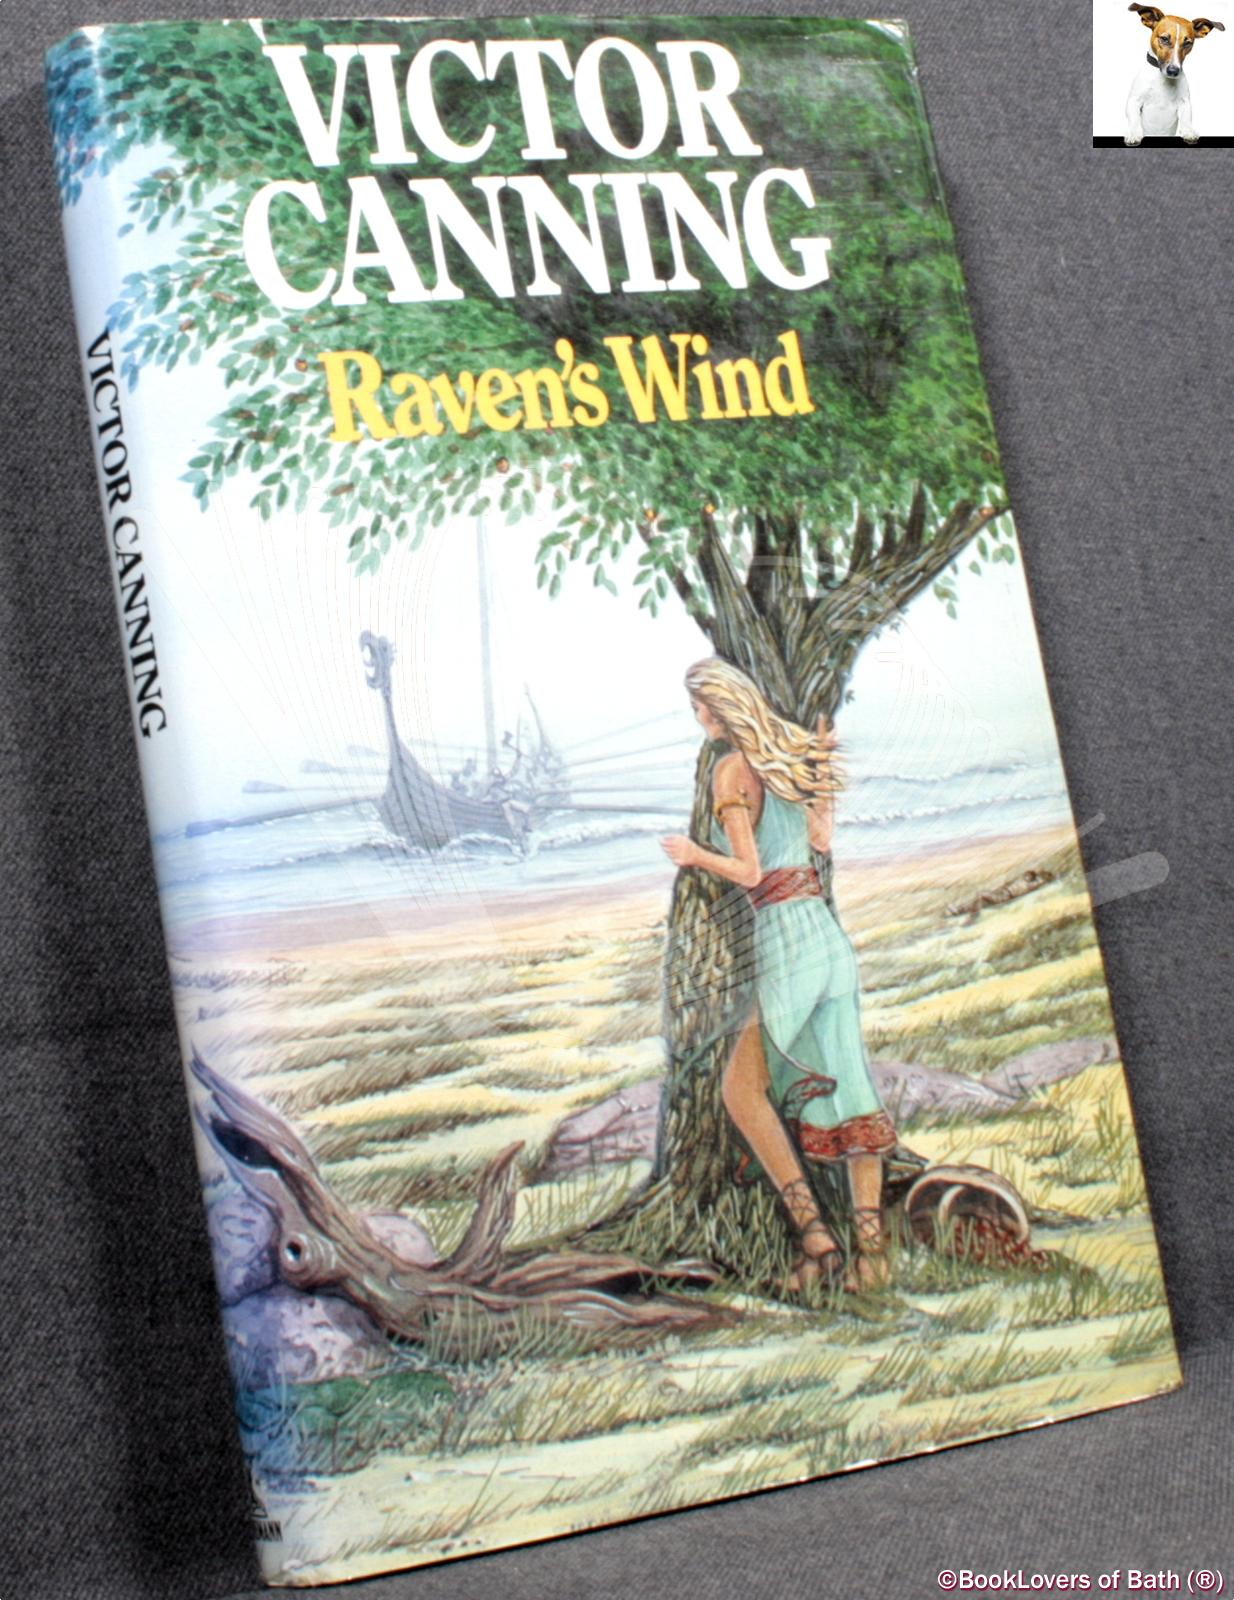 Raven's Wind - Victor Canning